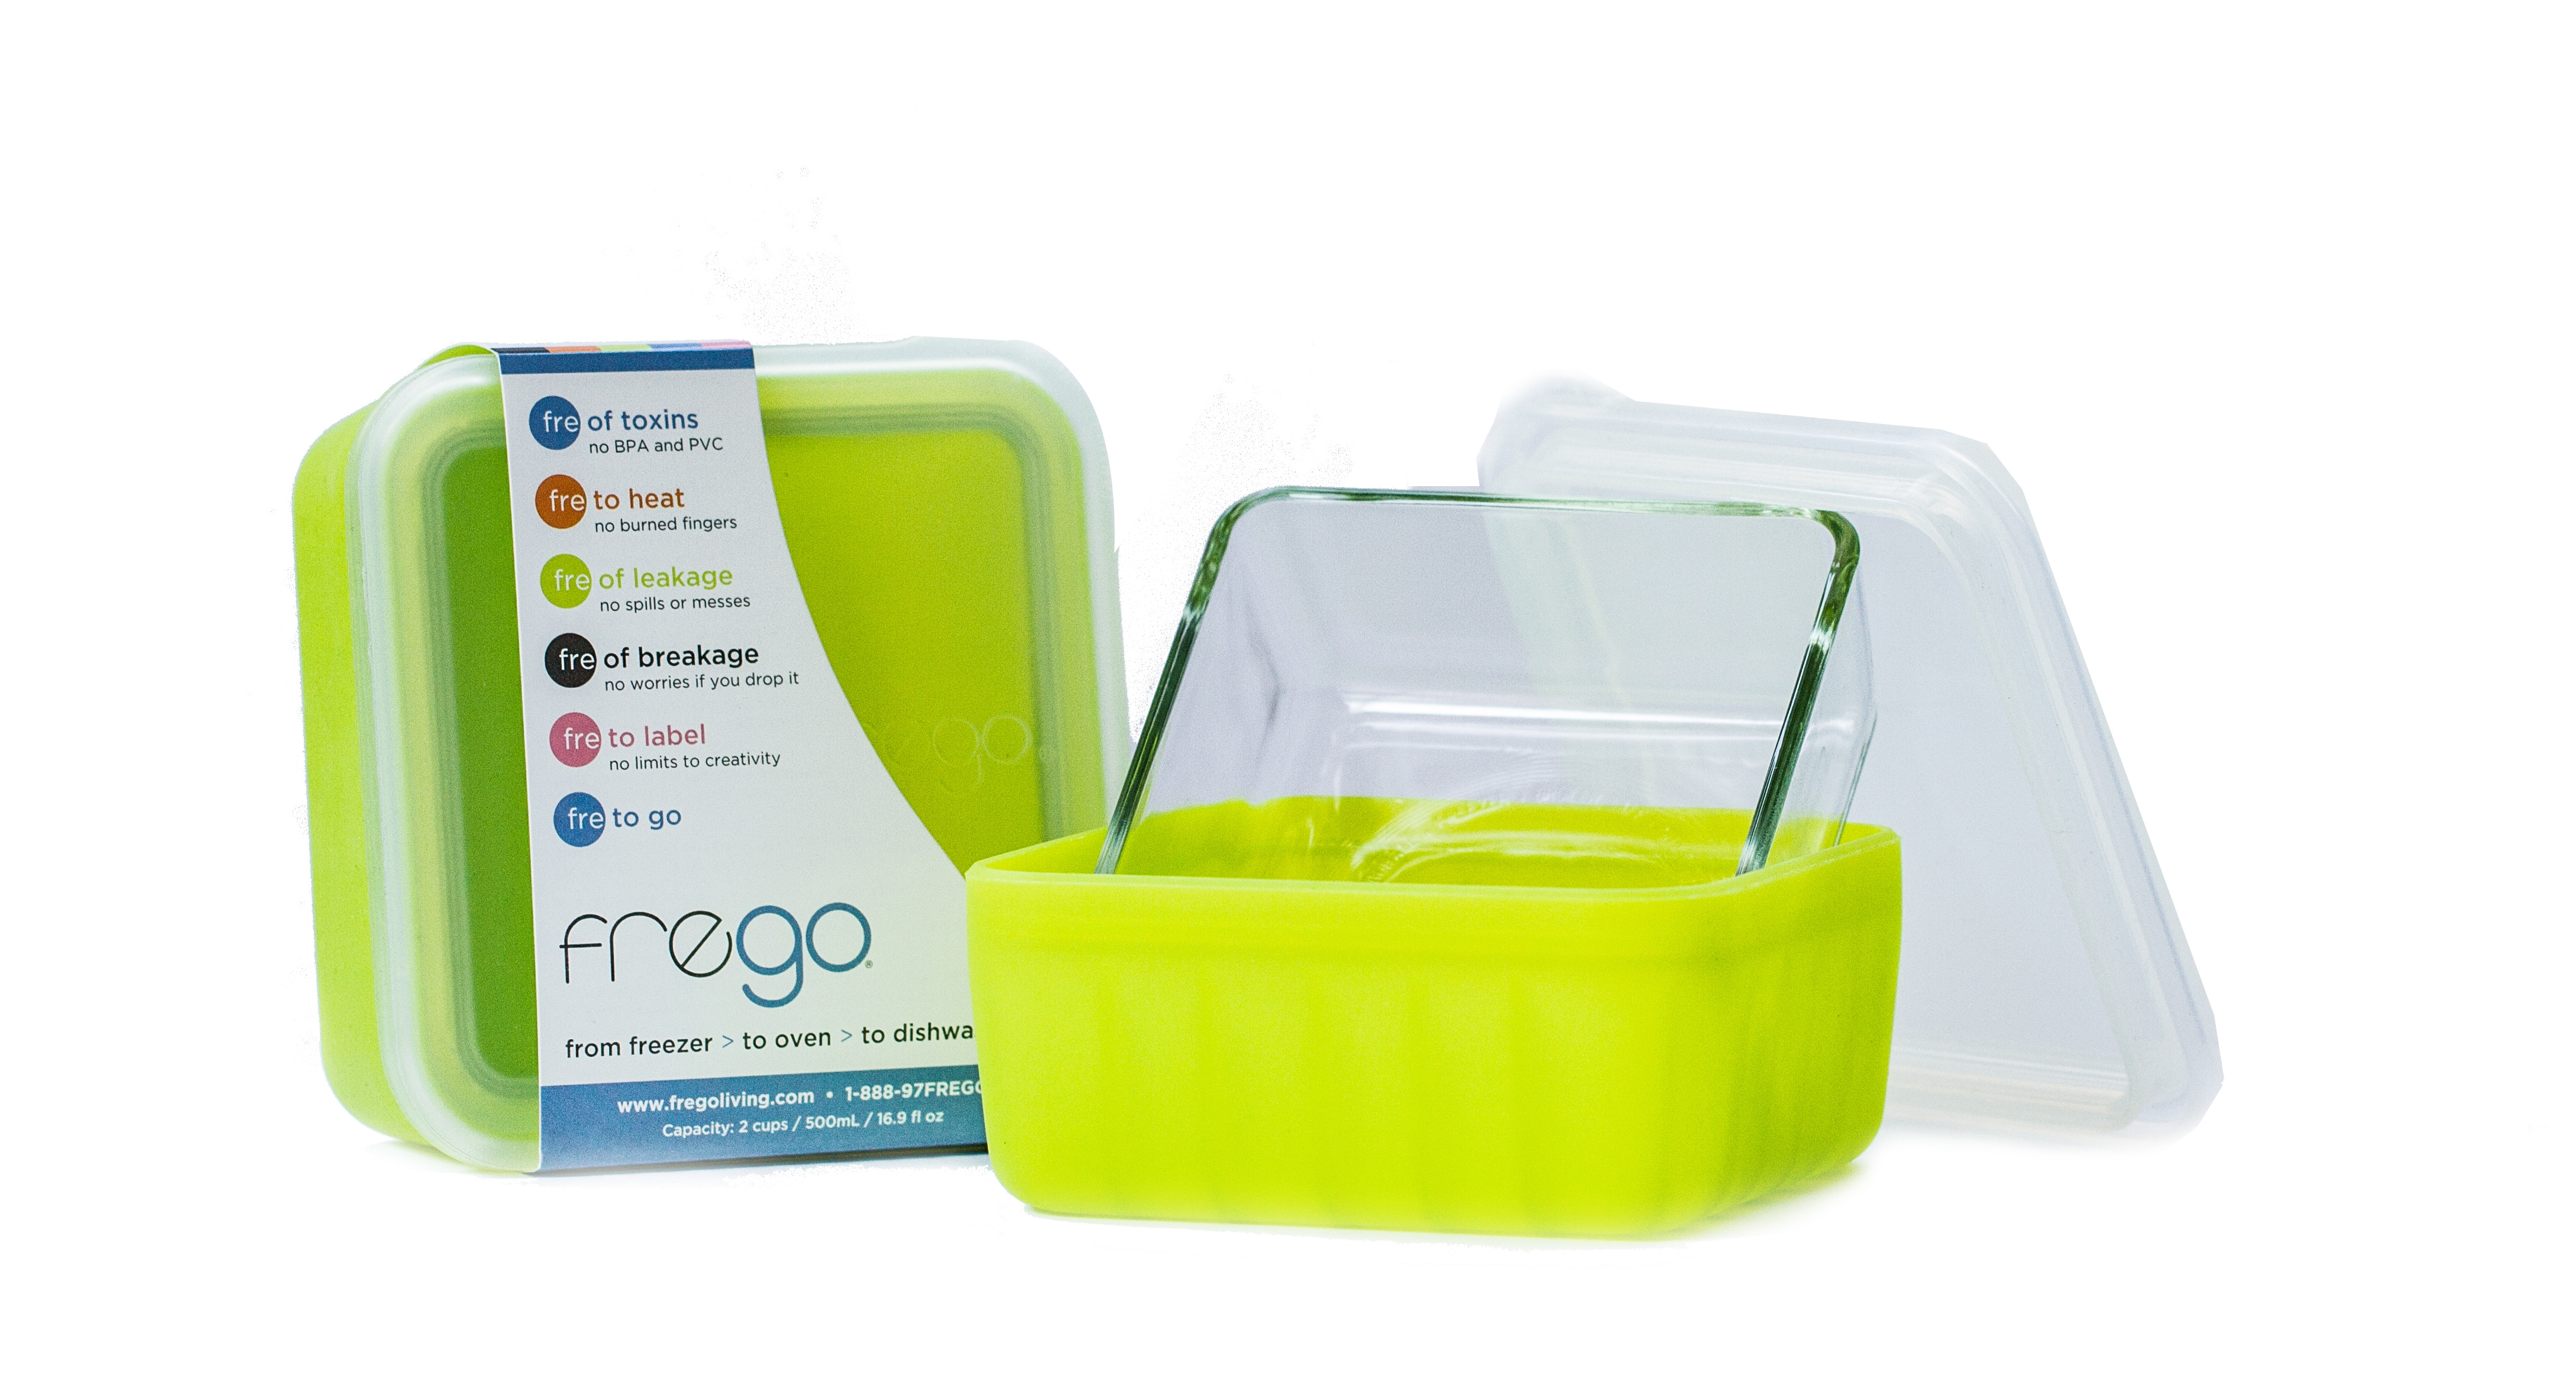 ... Image 654936_ALTMORE6.jpg  Product 654-936 / Price $24.95  Frego Food Storage  sc 1 st  The Shopping Channel & Buy Frego Food Storage Container - 2-cup - Kitchen - Kitchen ...